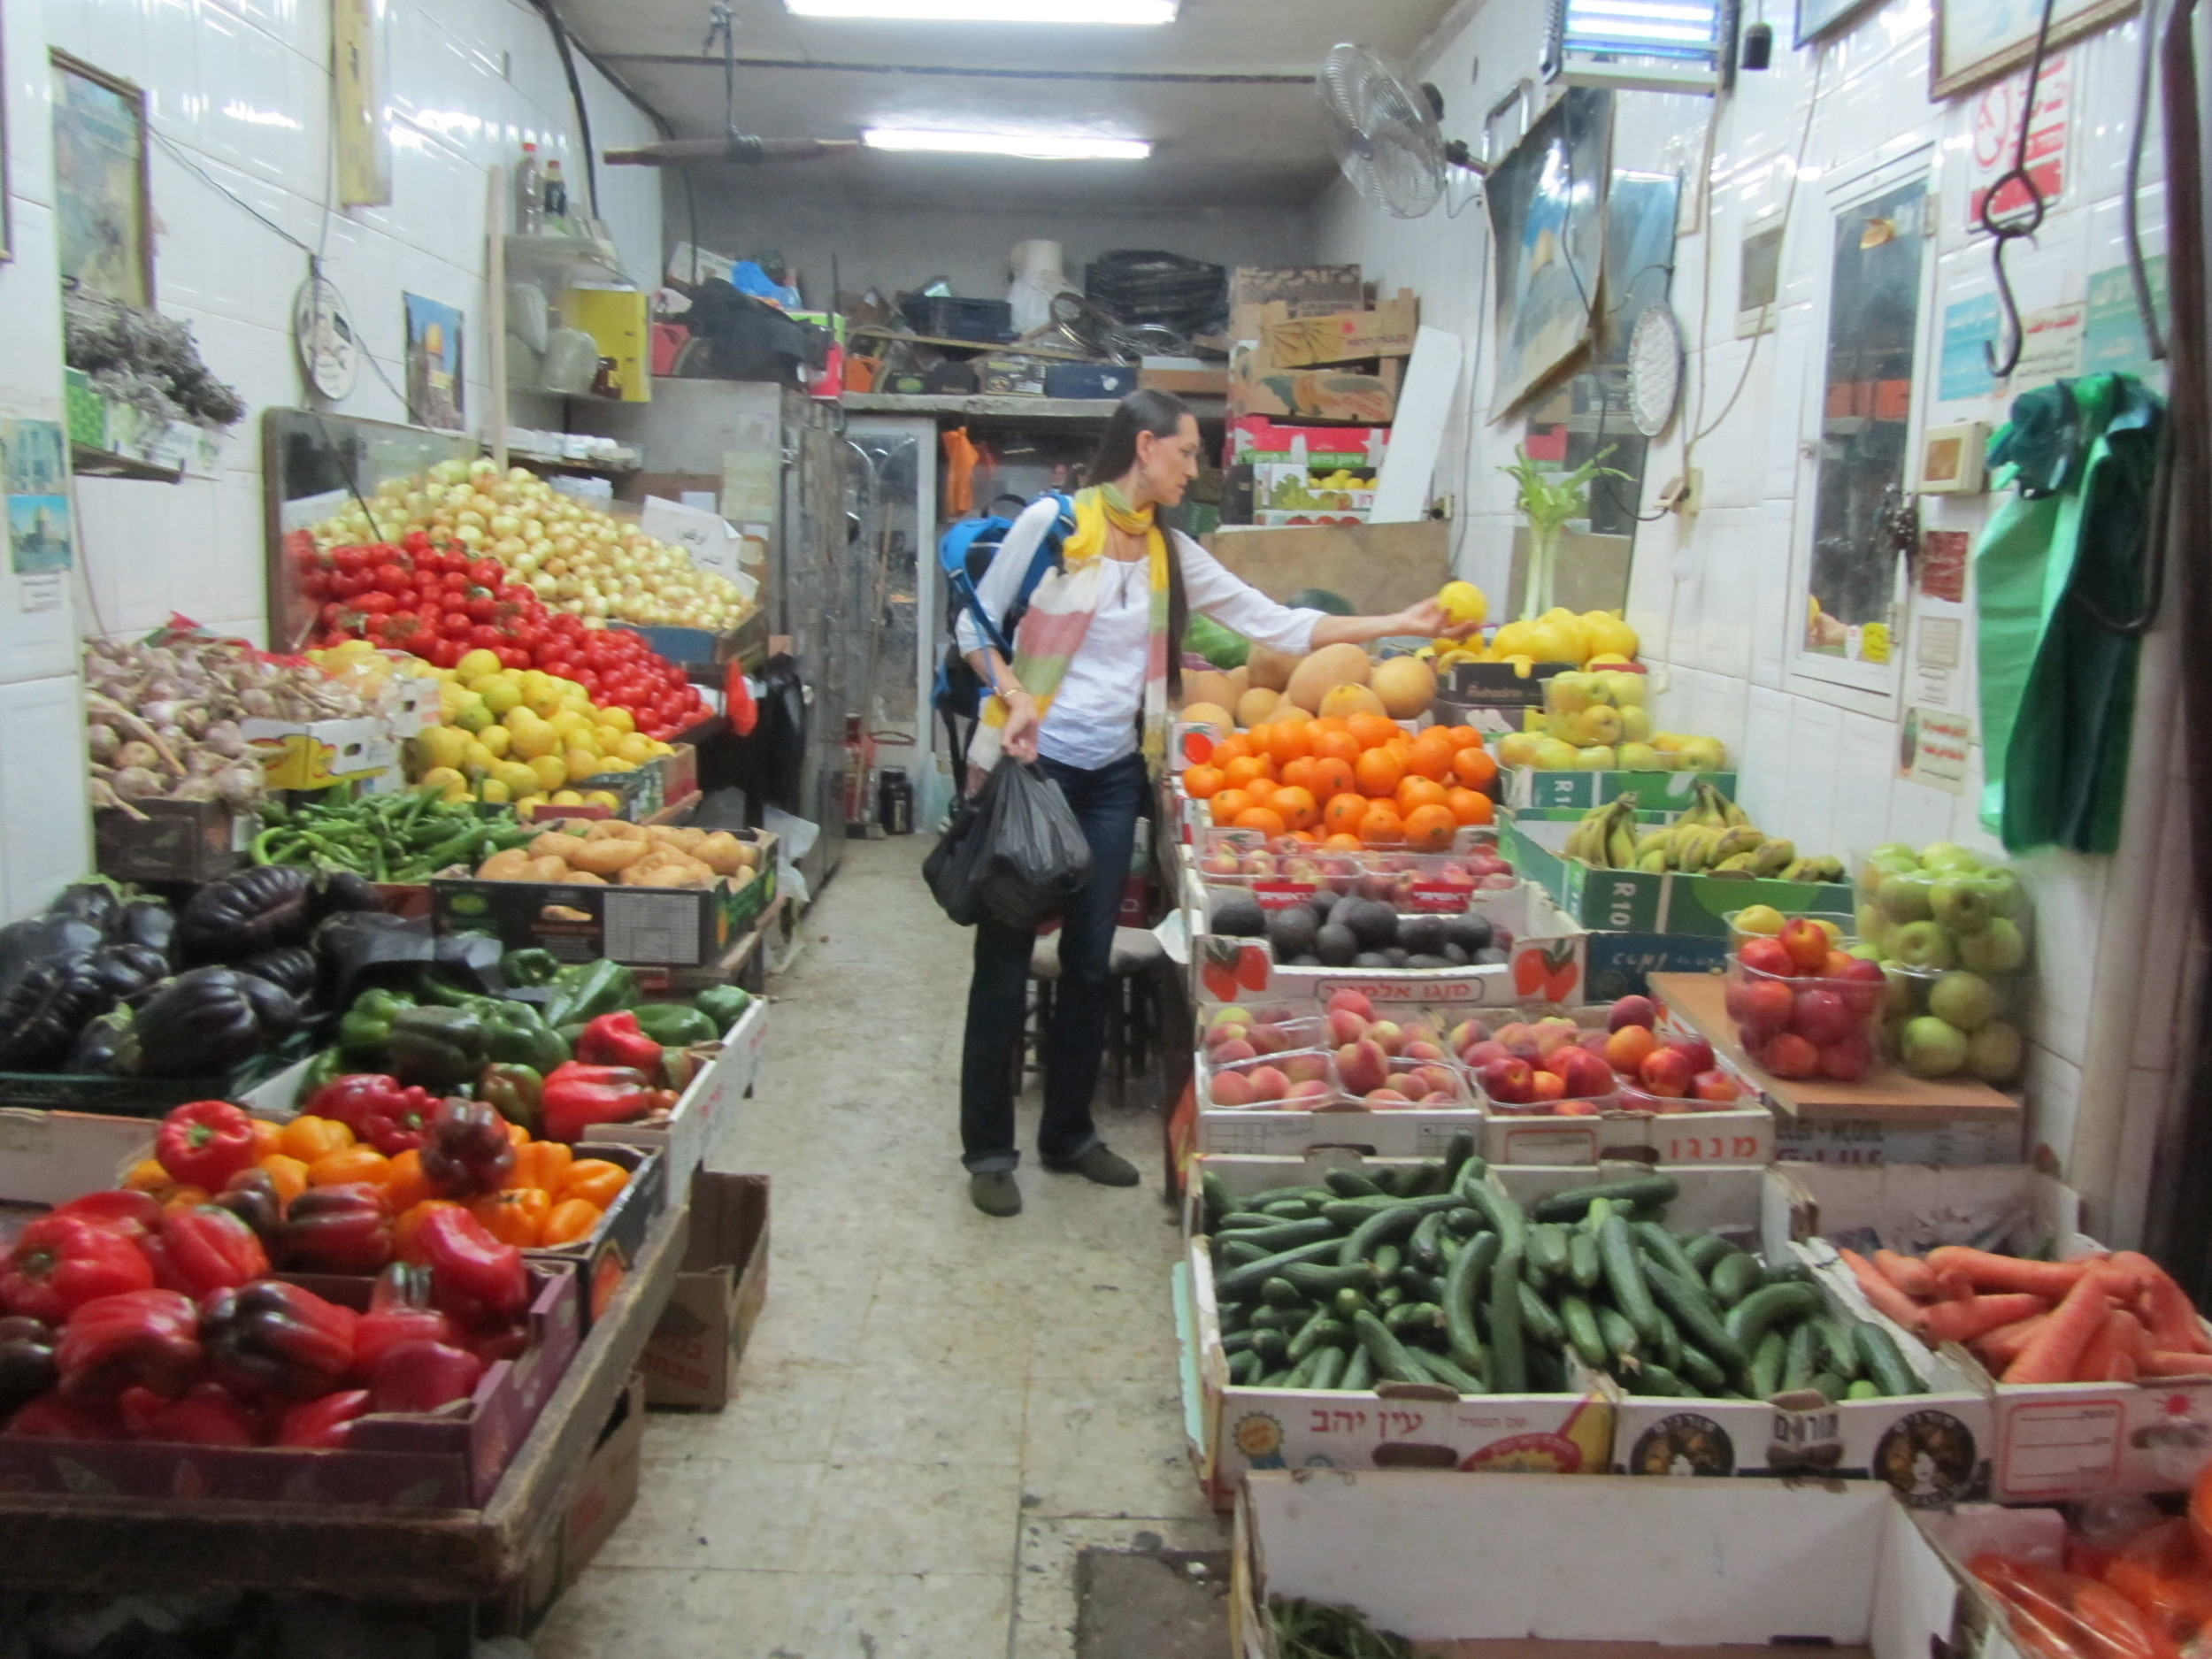 Pam Picking Out Fruit and Veggies in the Ancient Crusader Market